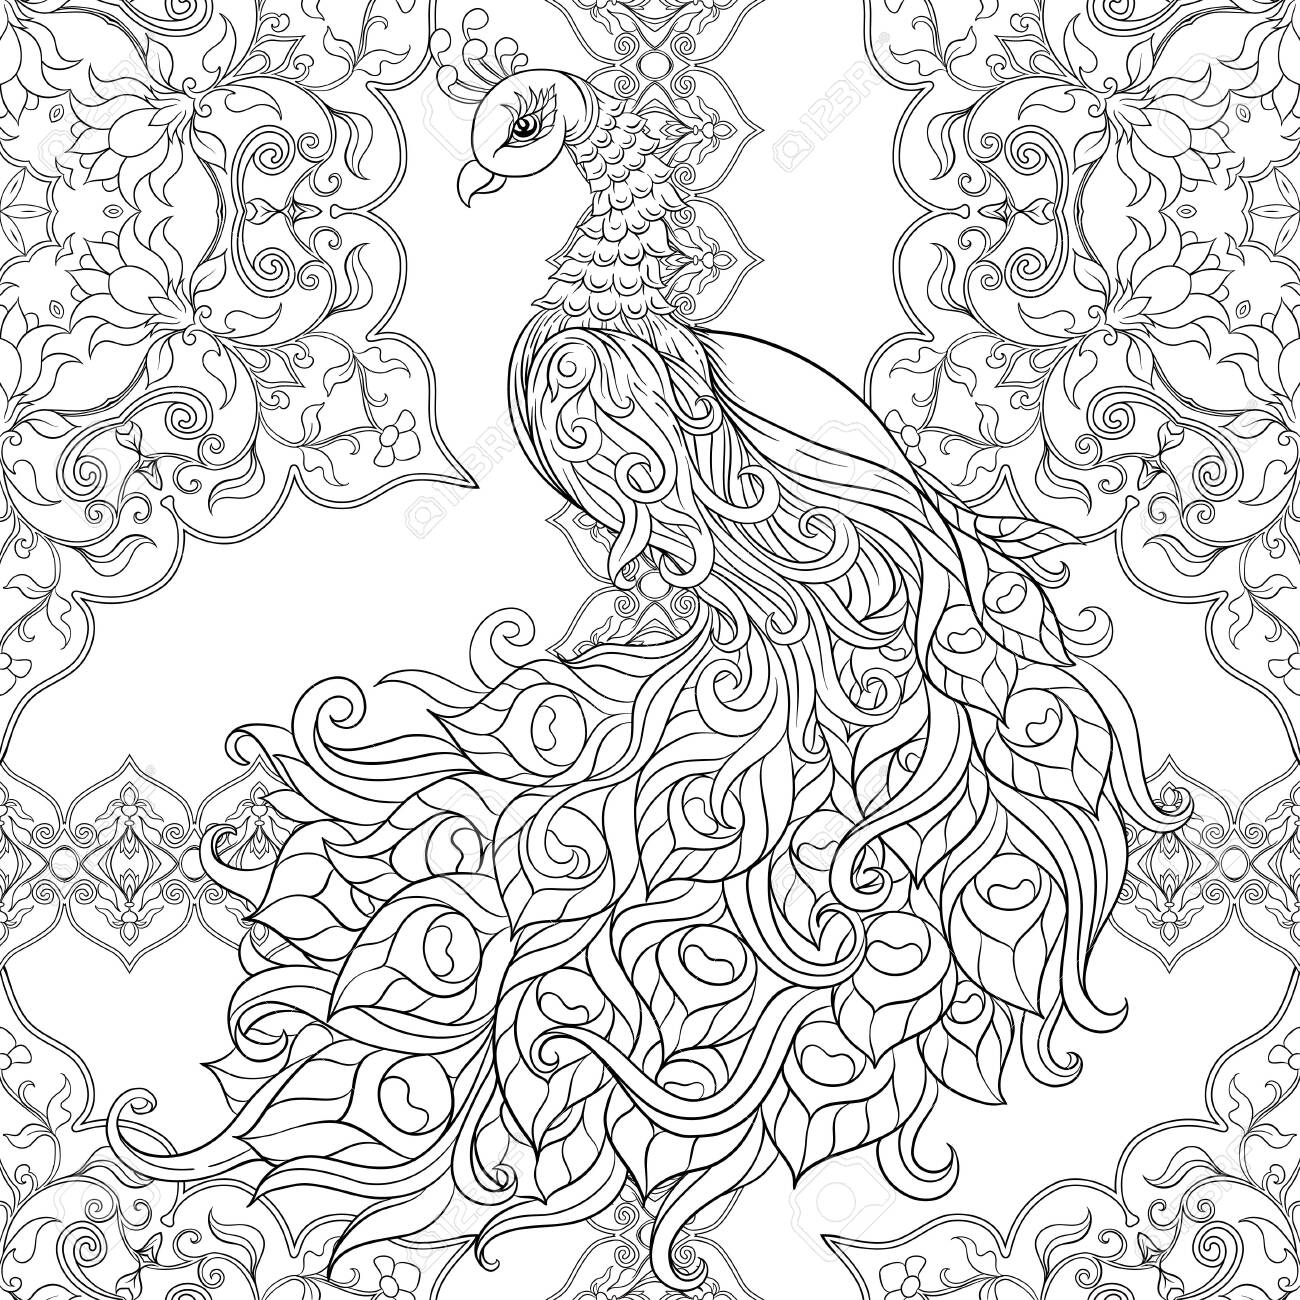 Peacock Bird Seamless Pattern Background Outline Hand Drawing Royalty Free Cliparts Vectors And Stock Illustration Image 134179154